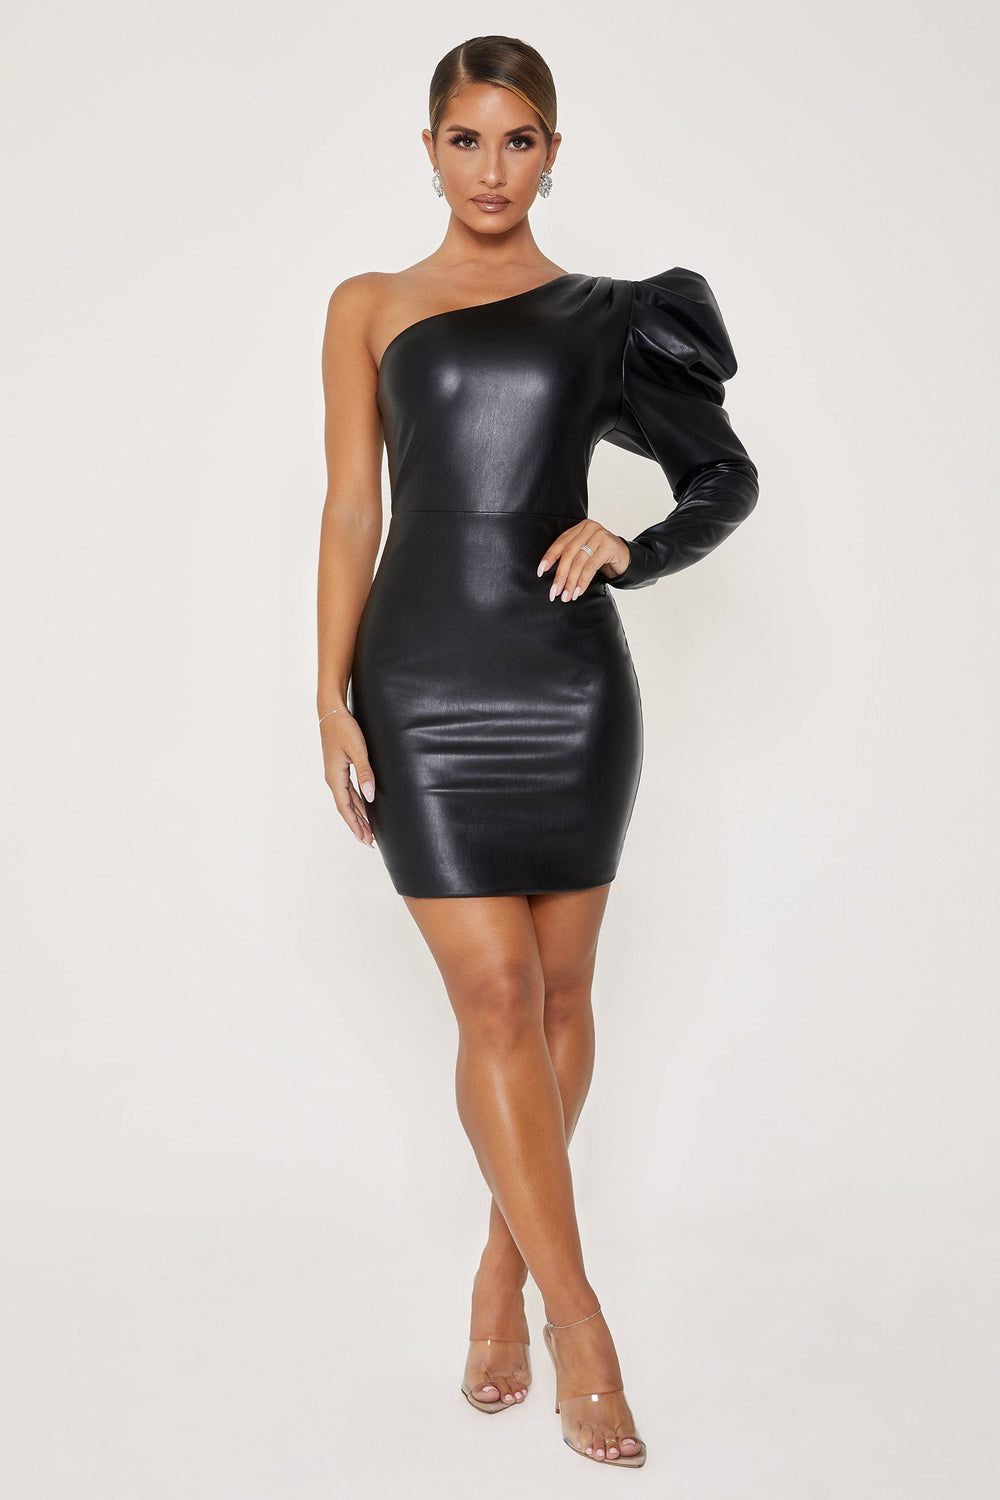 Ataya Leatherette One Shoulder Puff Sleeve Dress - Black - MESHKI ?id=12803595010123